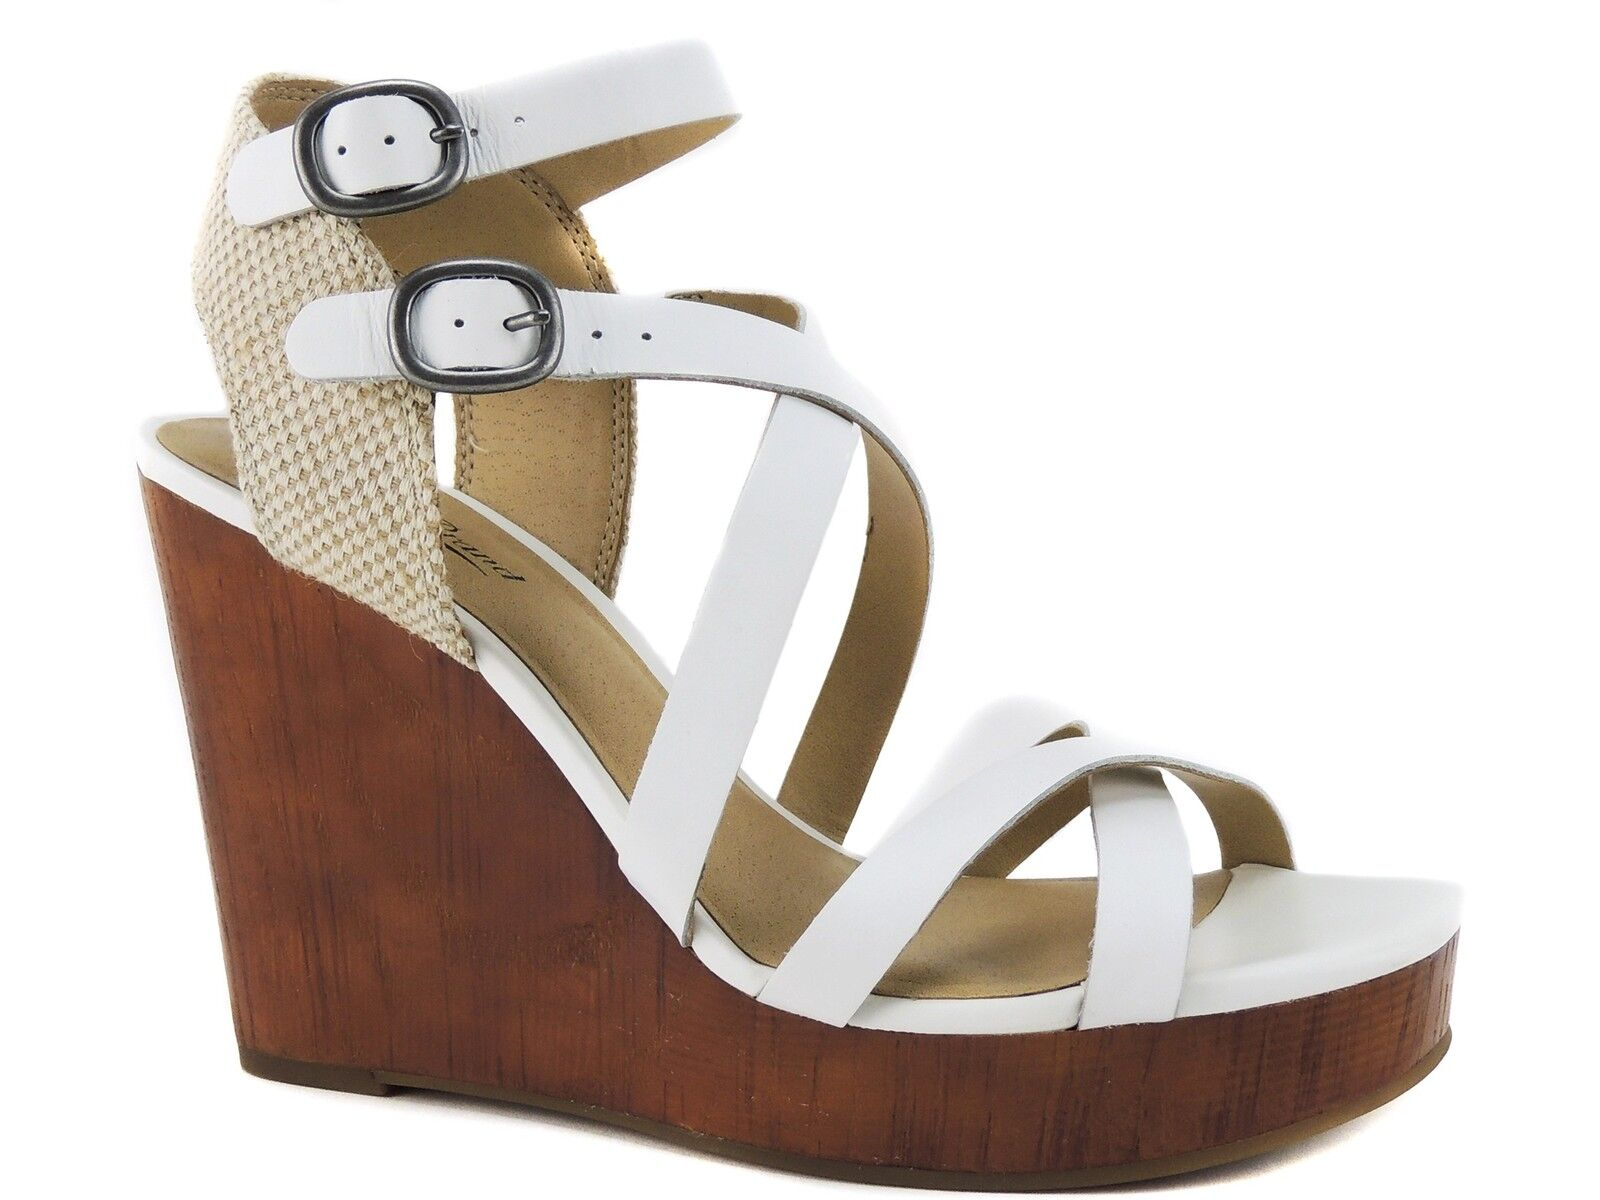 Lucky Brand Women's Lahoya Sandals White Leather Size 9 M